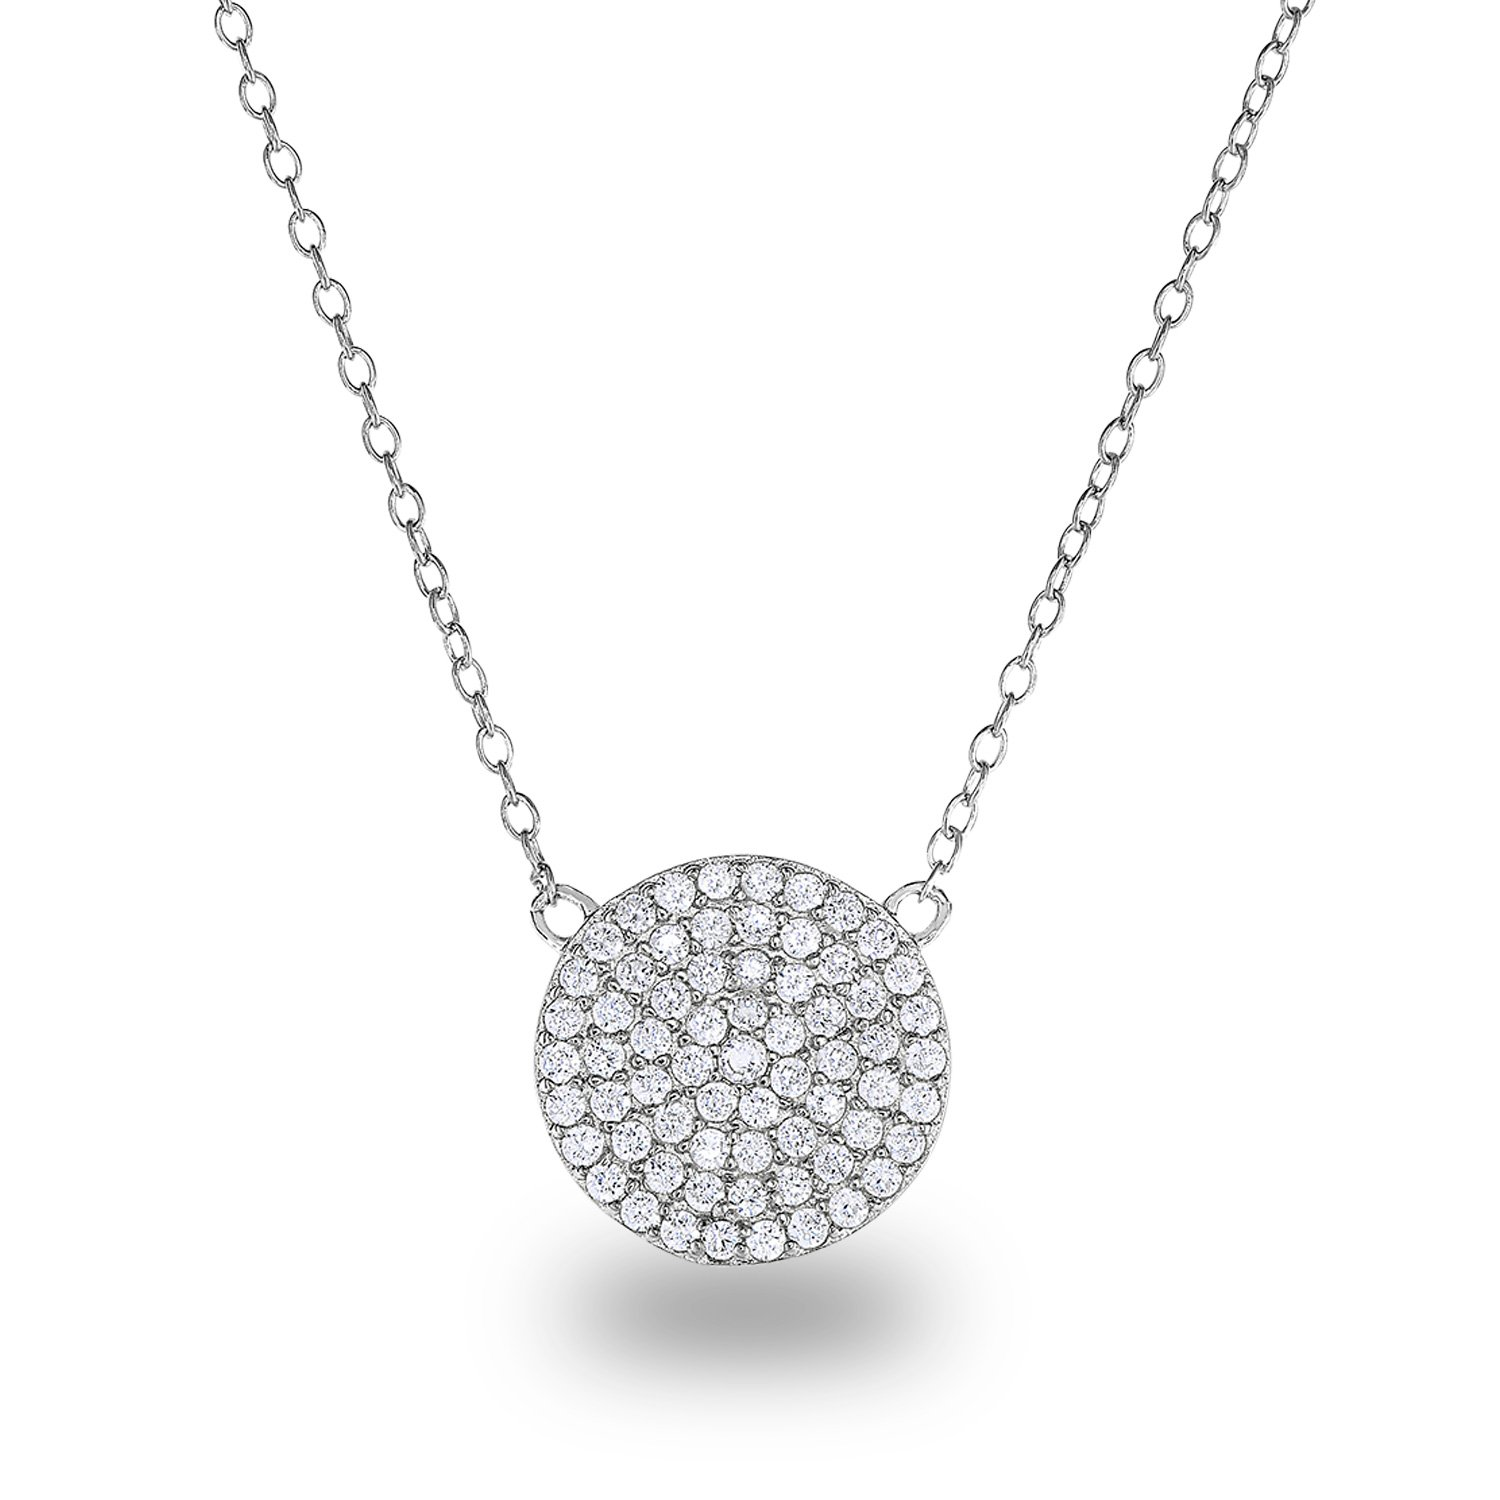 Rhodium Plated Sterling Silver Cubic Zirconia Pave Disc Circle Chain Necklace,18'' Diameter:12mm